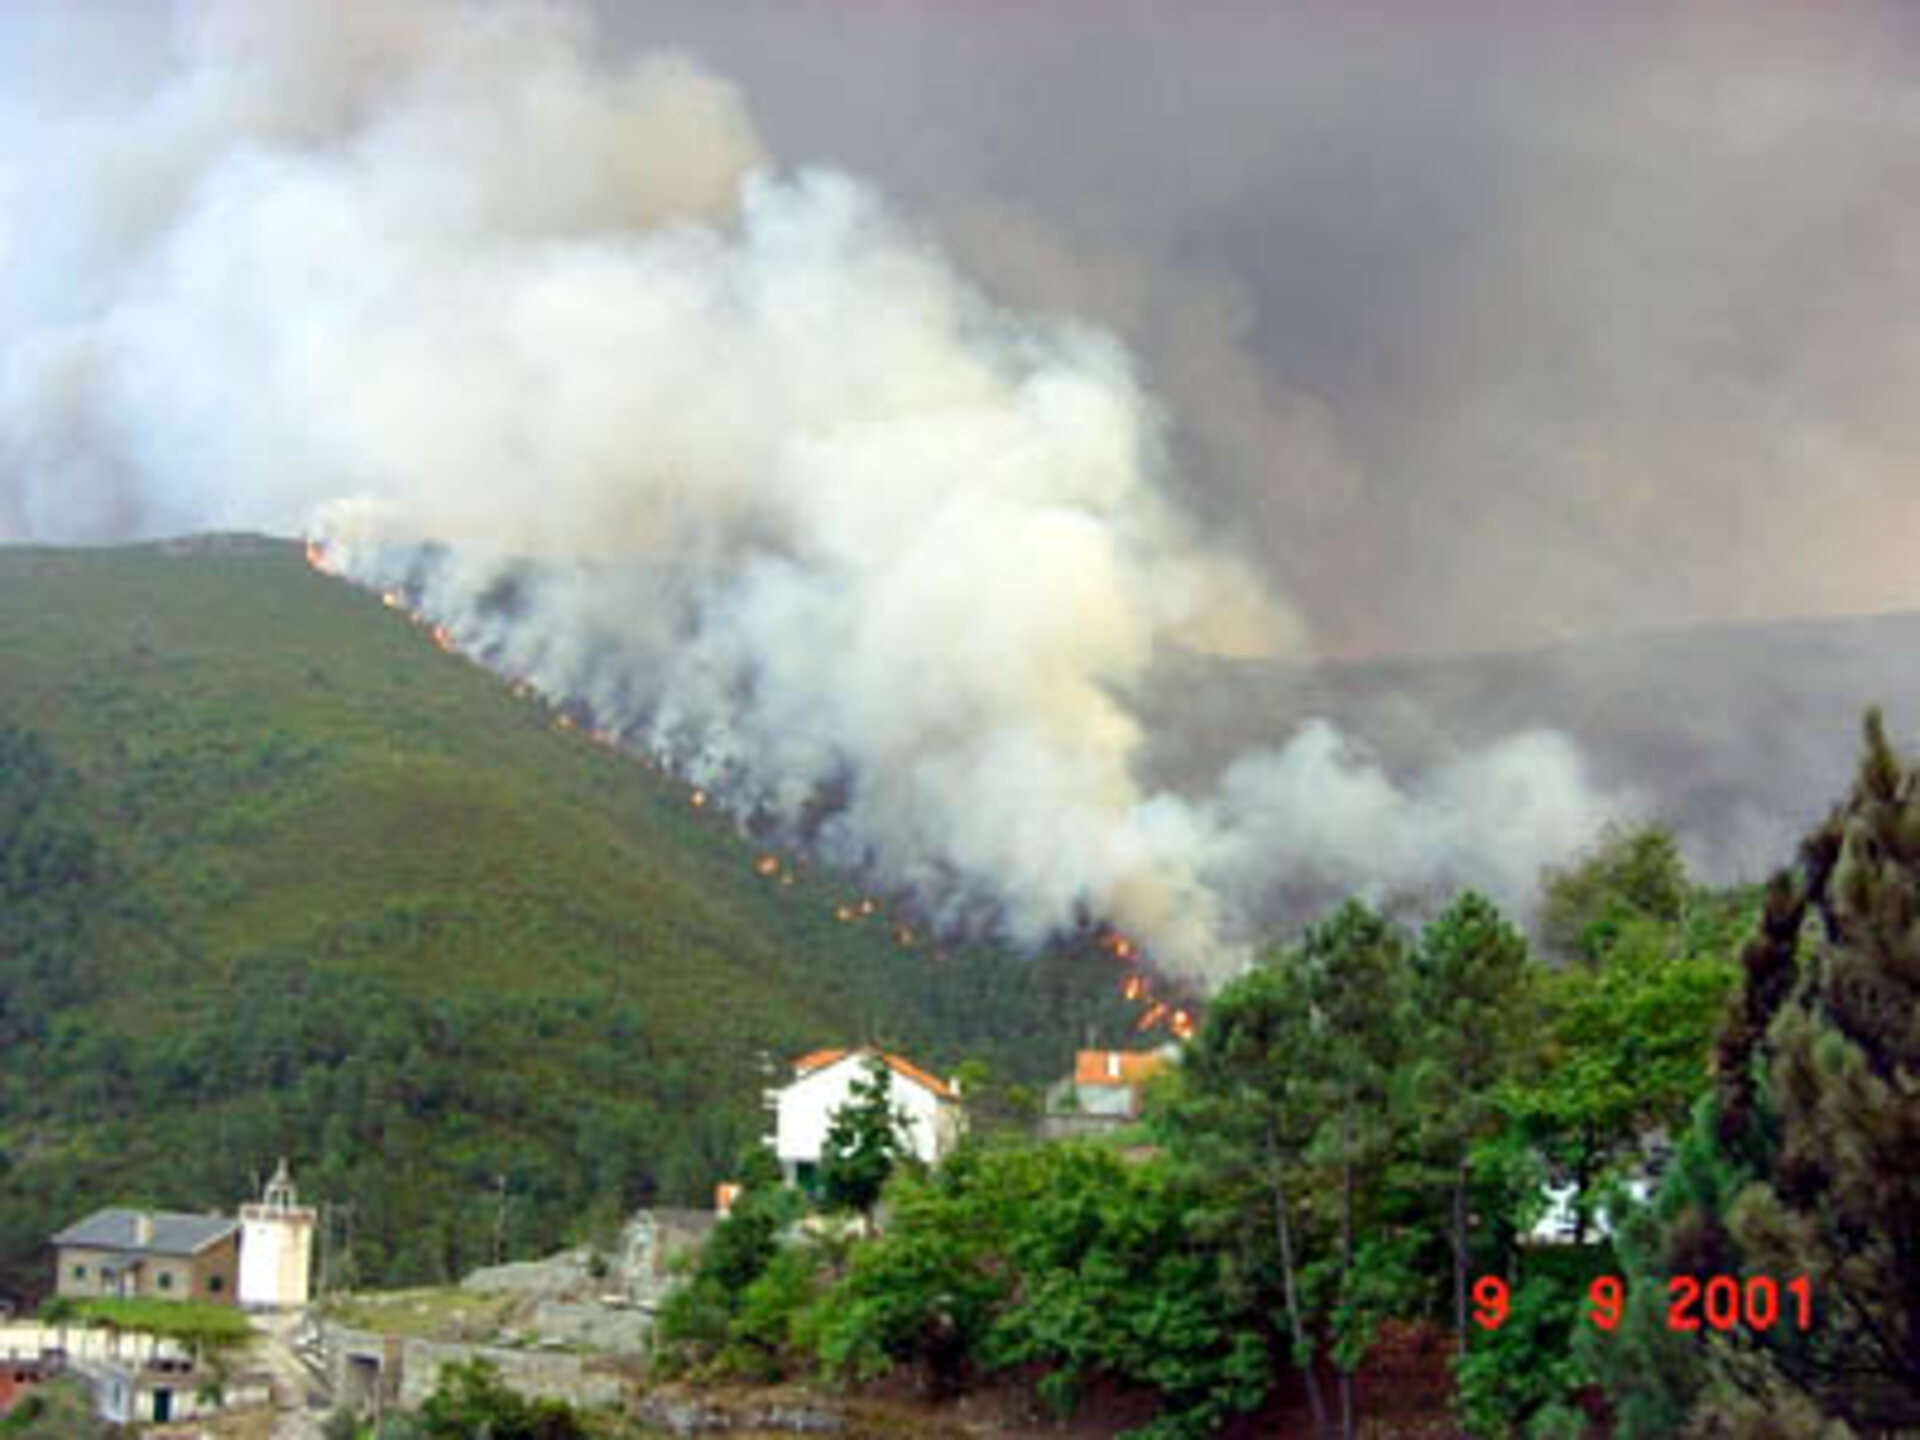 ESA's PREMFIRE project to fight forest fires